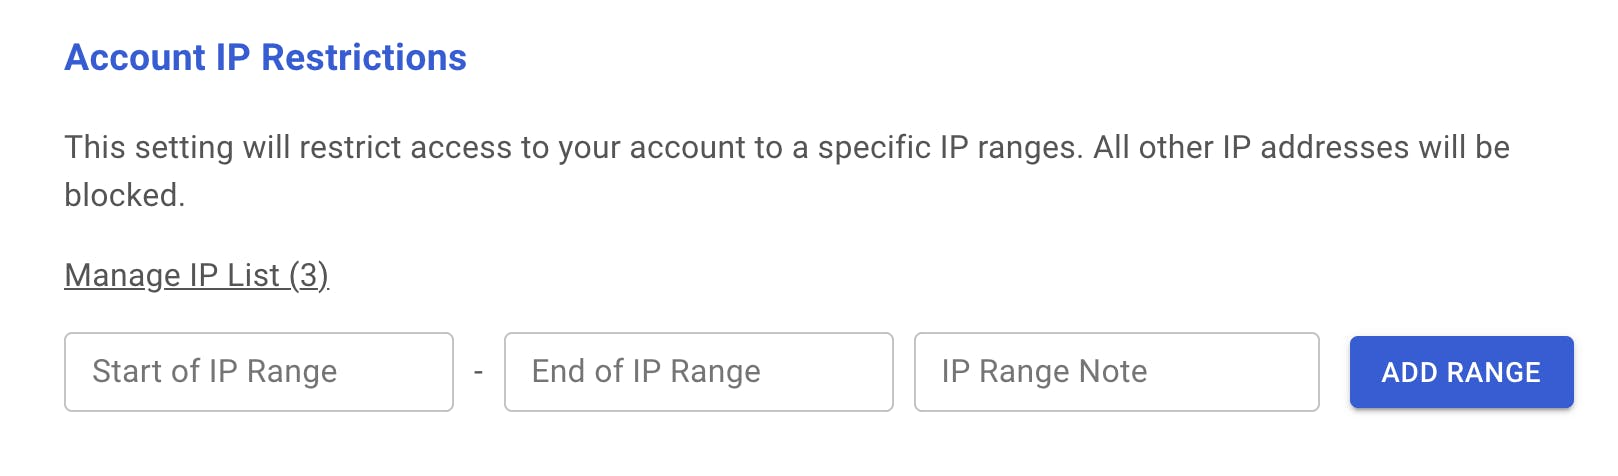 Account IP restrictions.